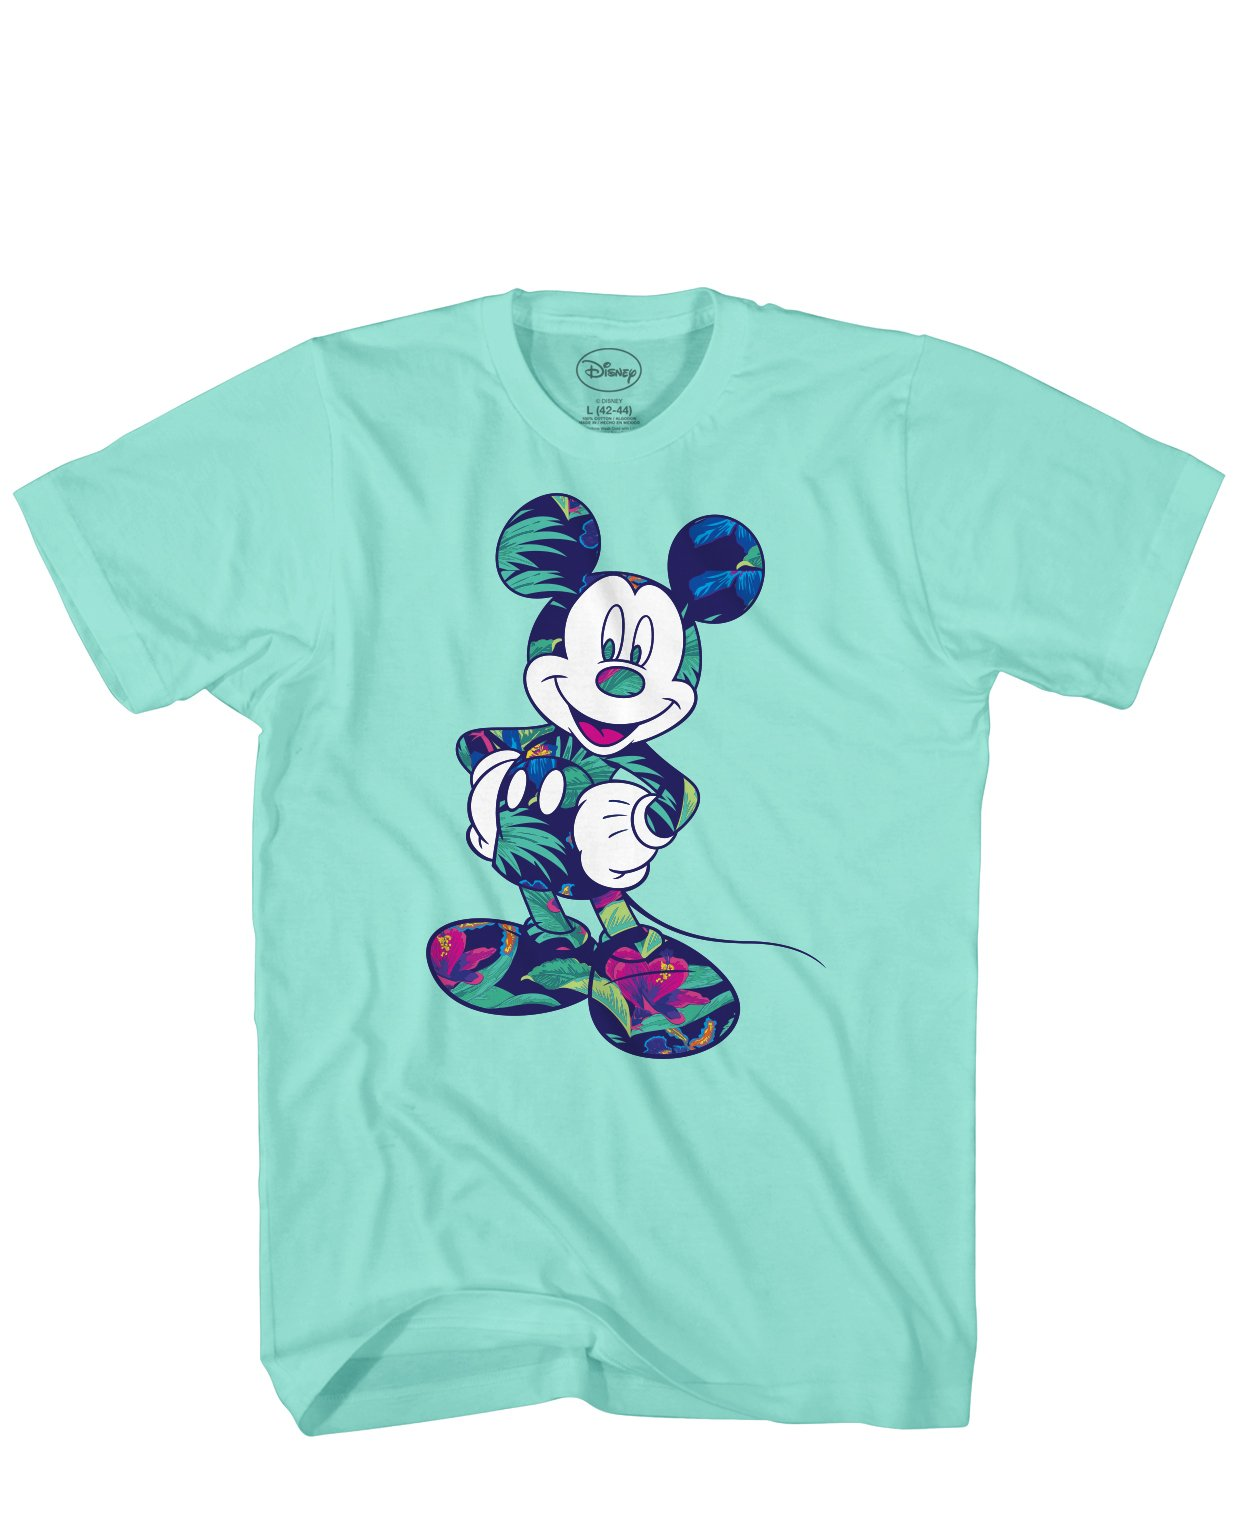 Disney Mickey Mouse Tropical Mint Green Graphic T Shirt S